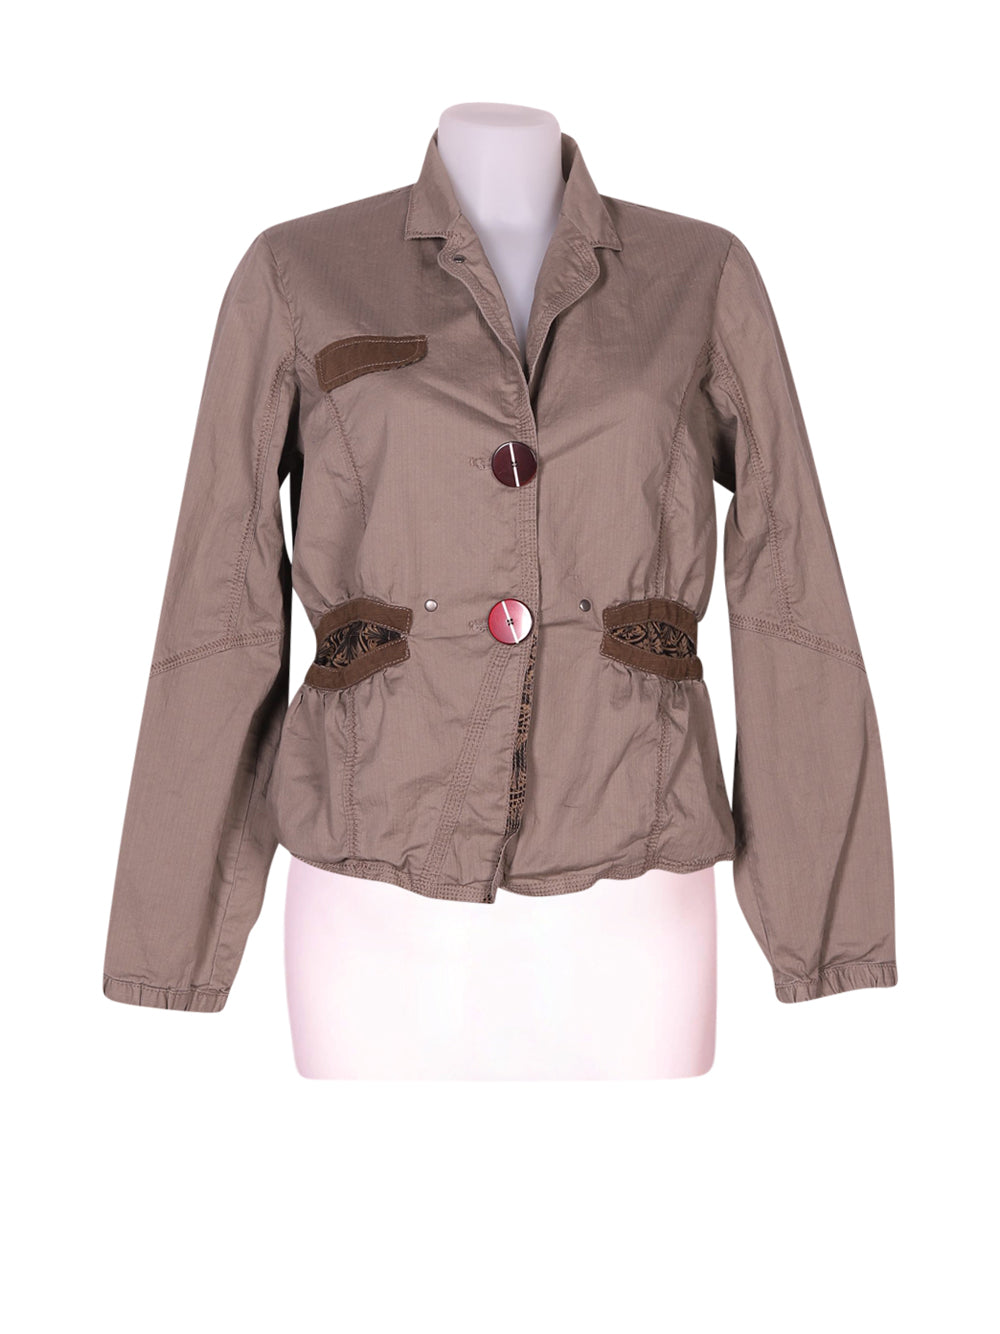 Front photo of Preloved solola Grey Woman's jacket - size 10/M